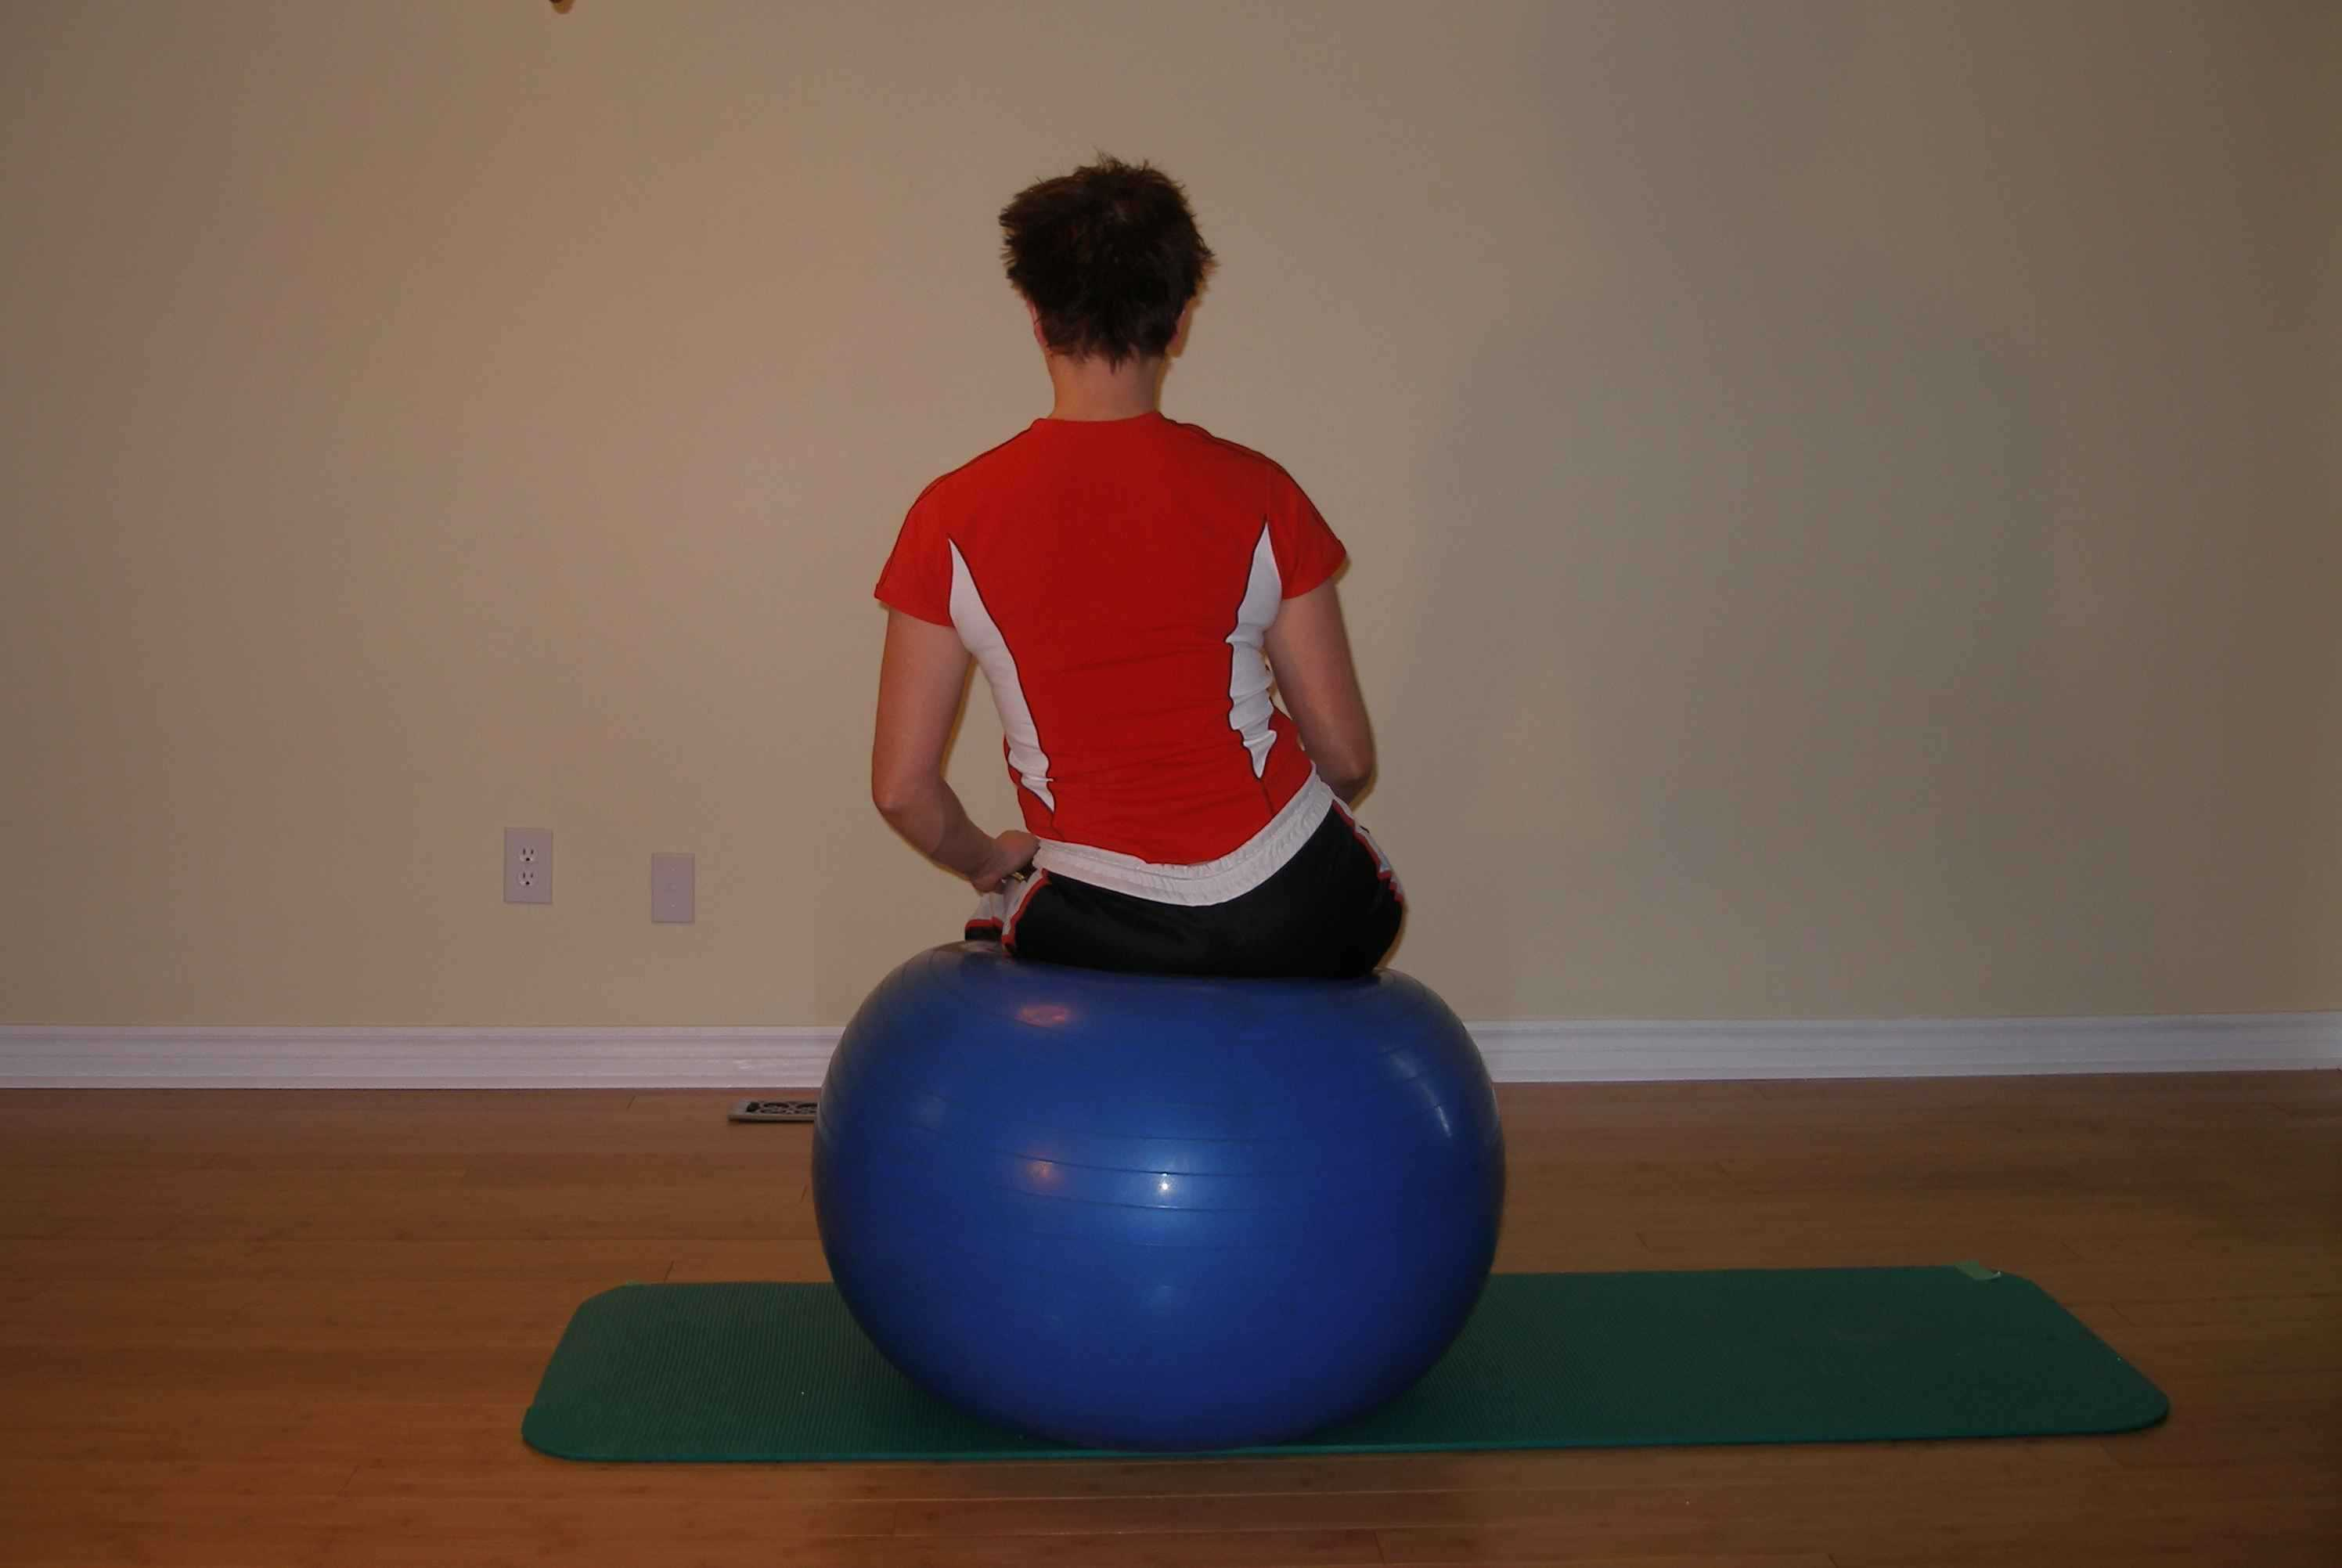 exercise ball pelvic lateral shift position 2